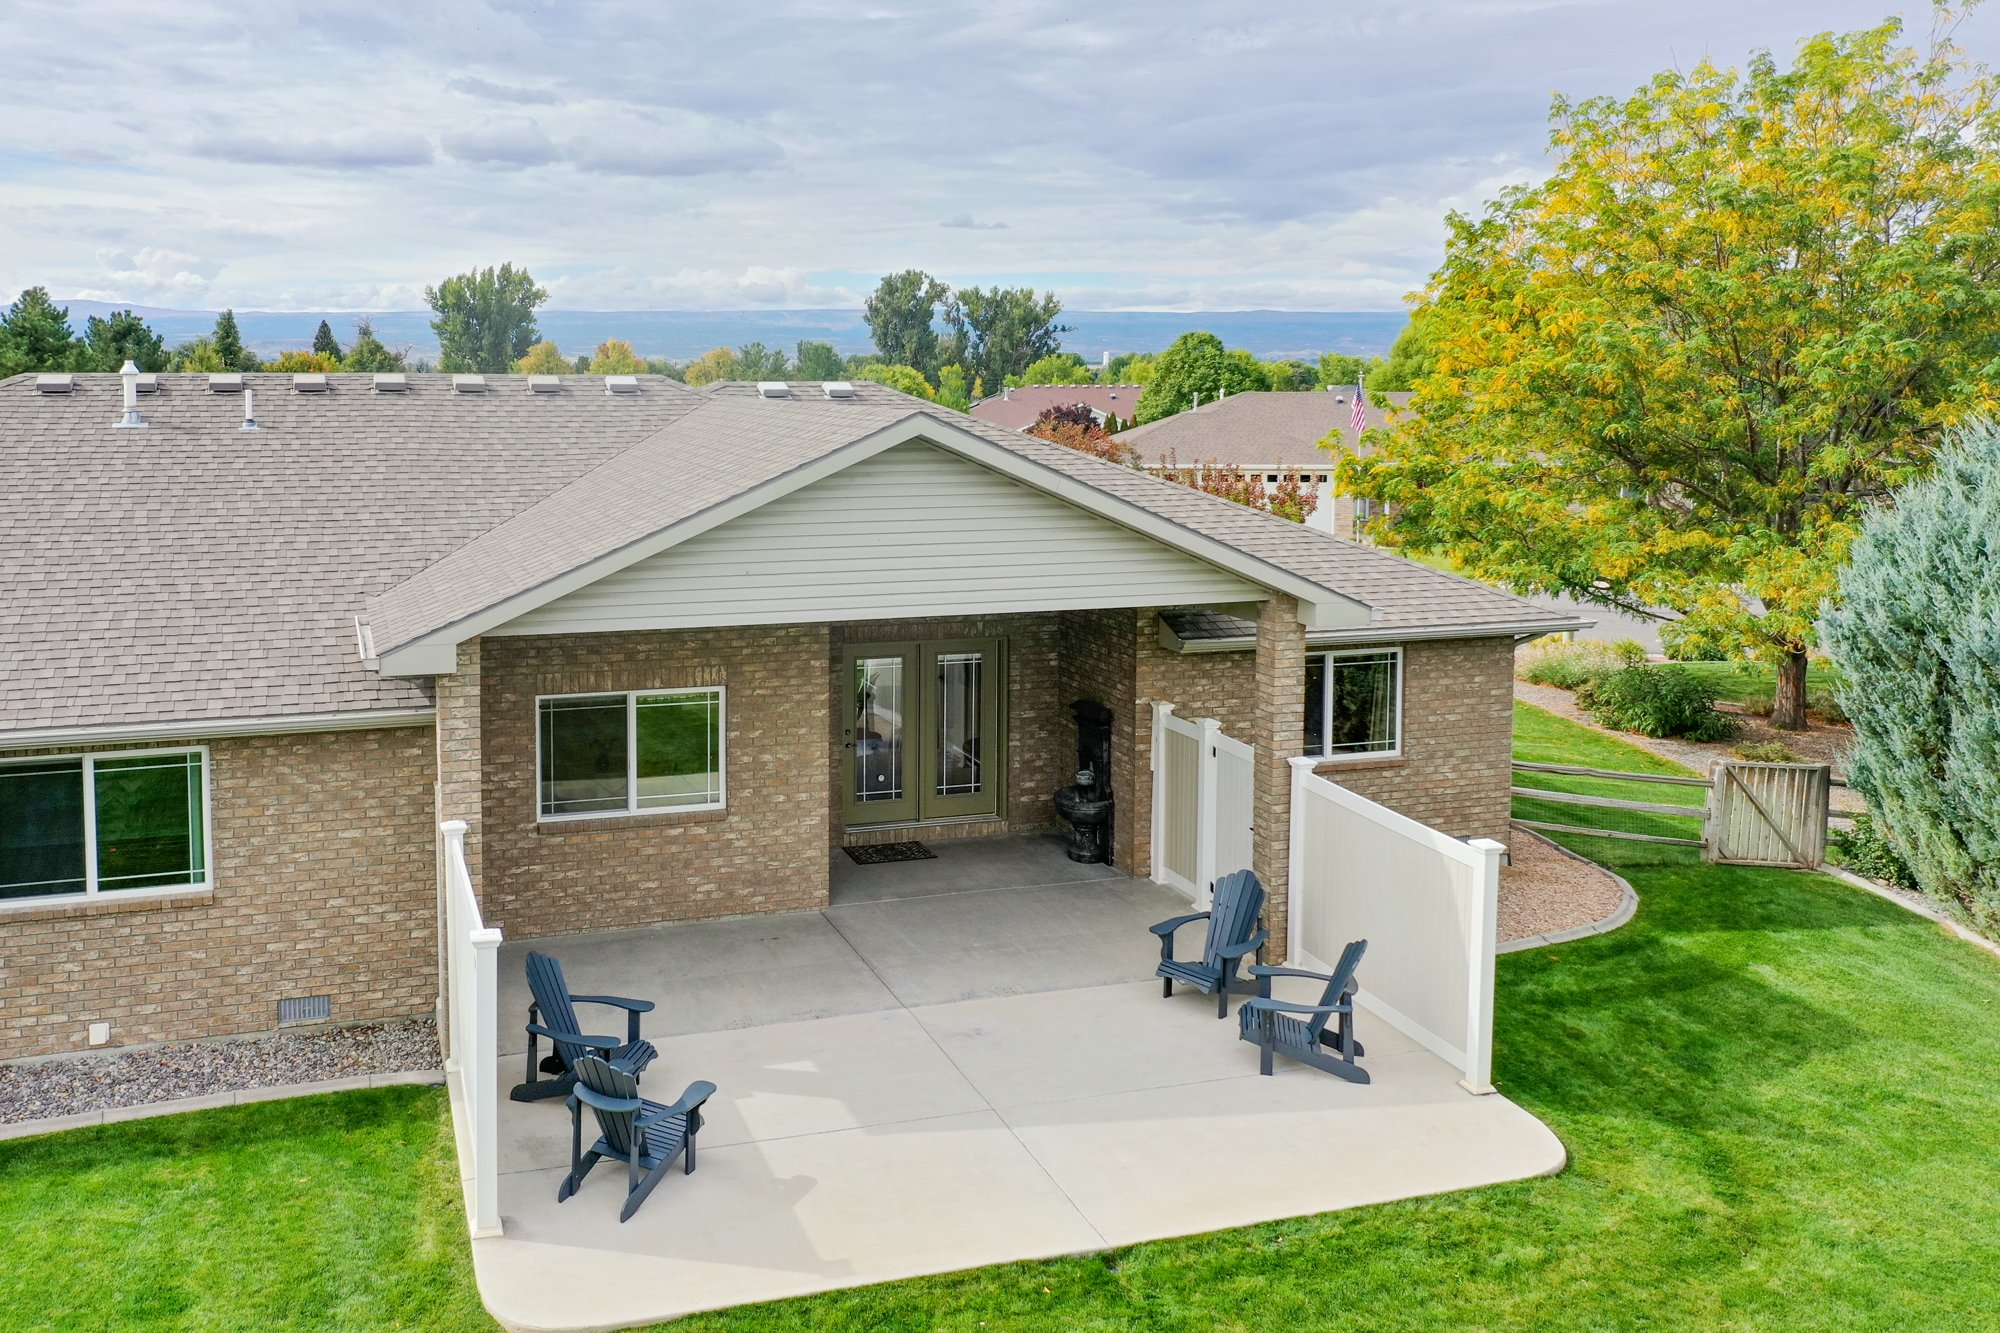 Aerial View of Private Back Patio - 2941 Ivy Dr Montrose, CO 81401 - Atha Team Real Estate